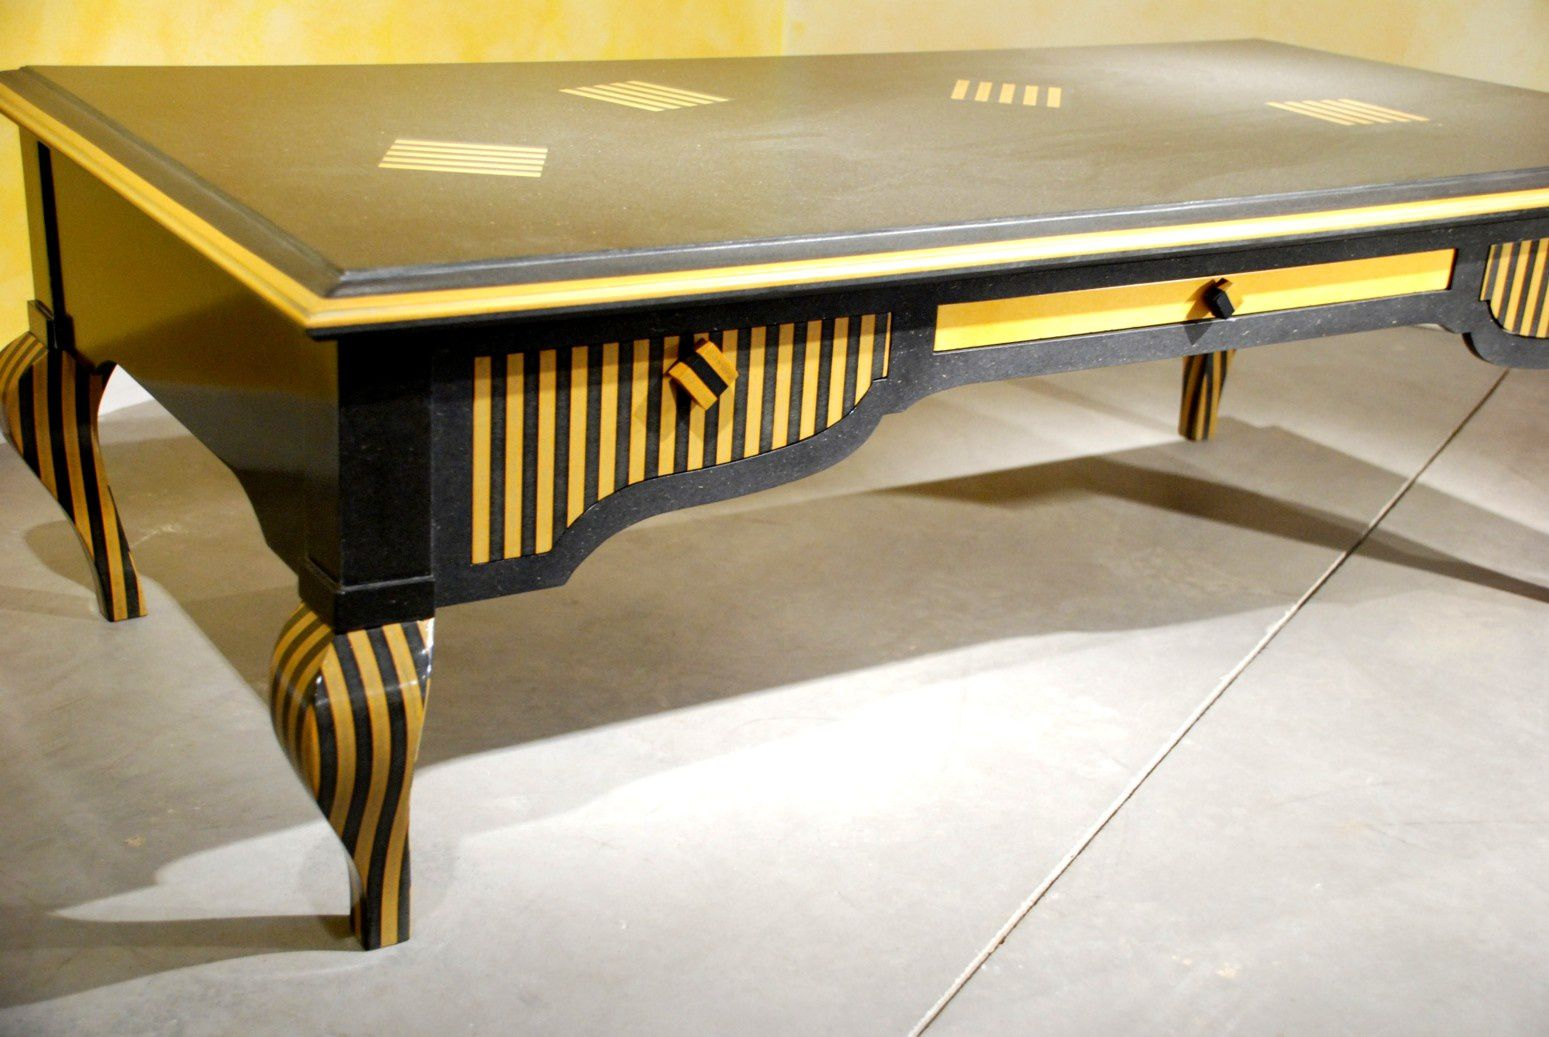 Album table basse contemporaine louis xxxi atelier pourquoi pas mobilie - Table salon contemporaine ...